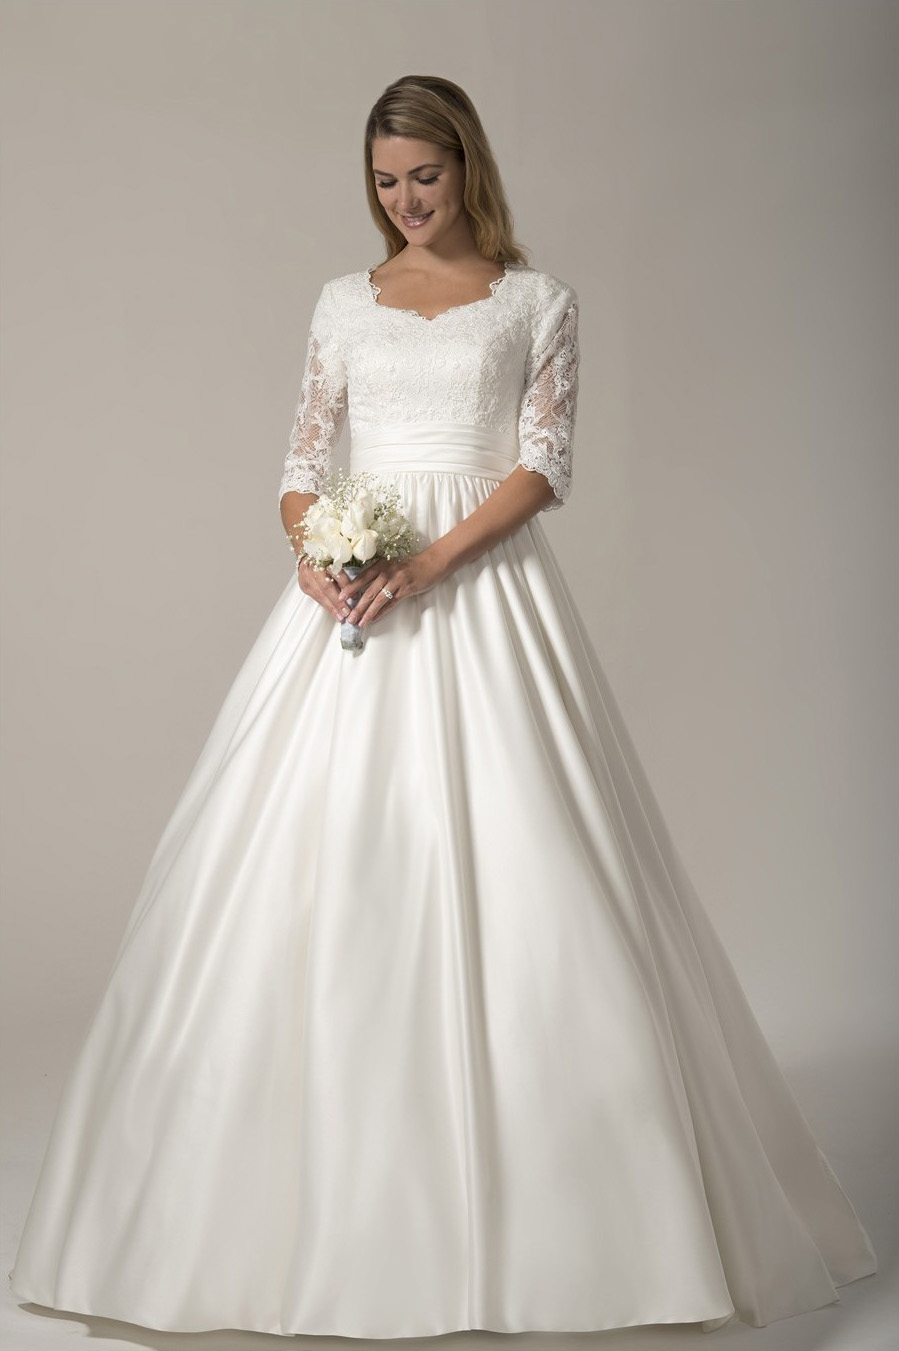 25 Modest Ball Gown Wedding Dresses - 18